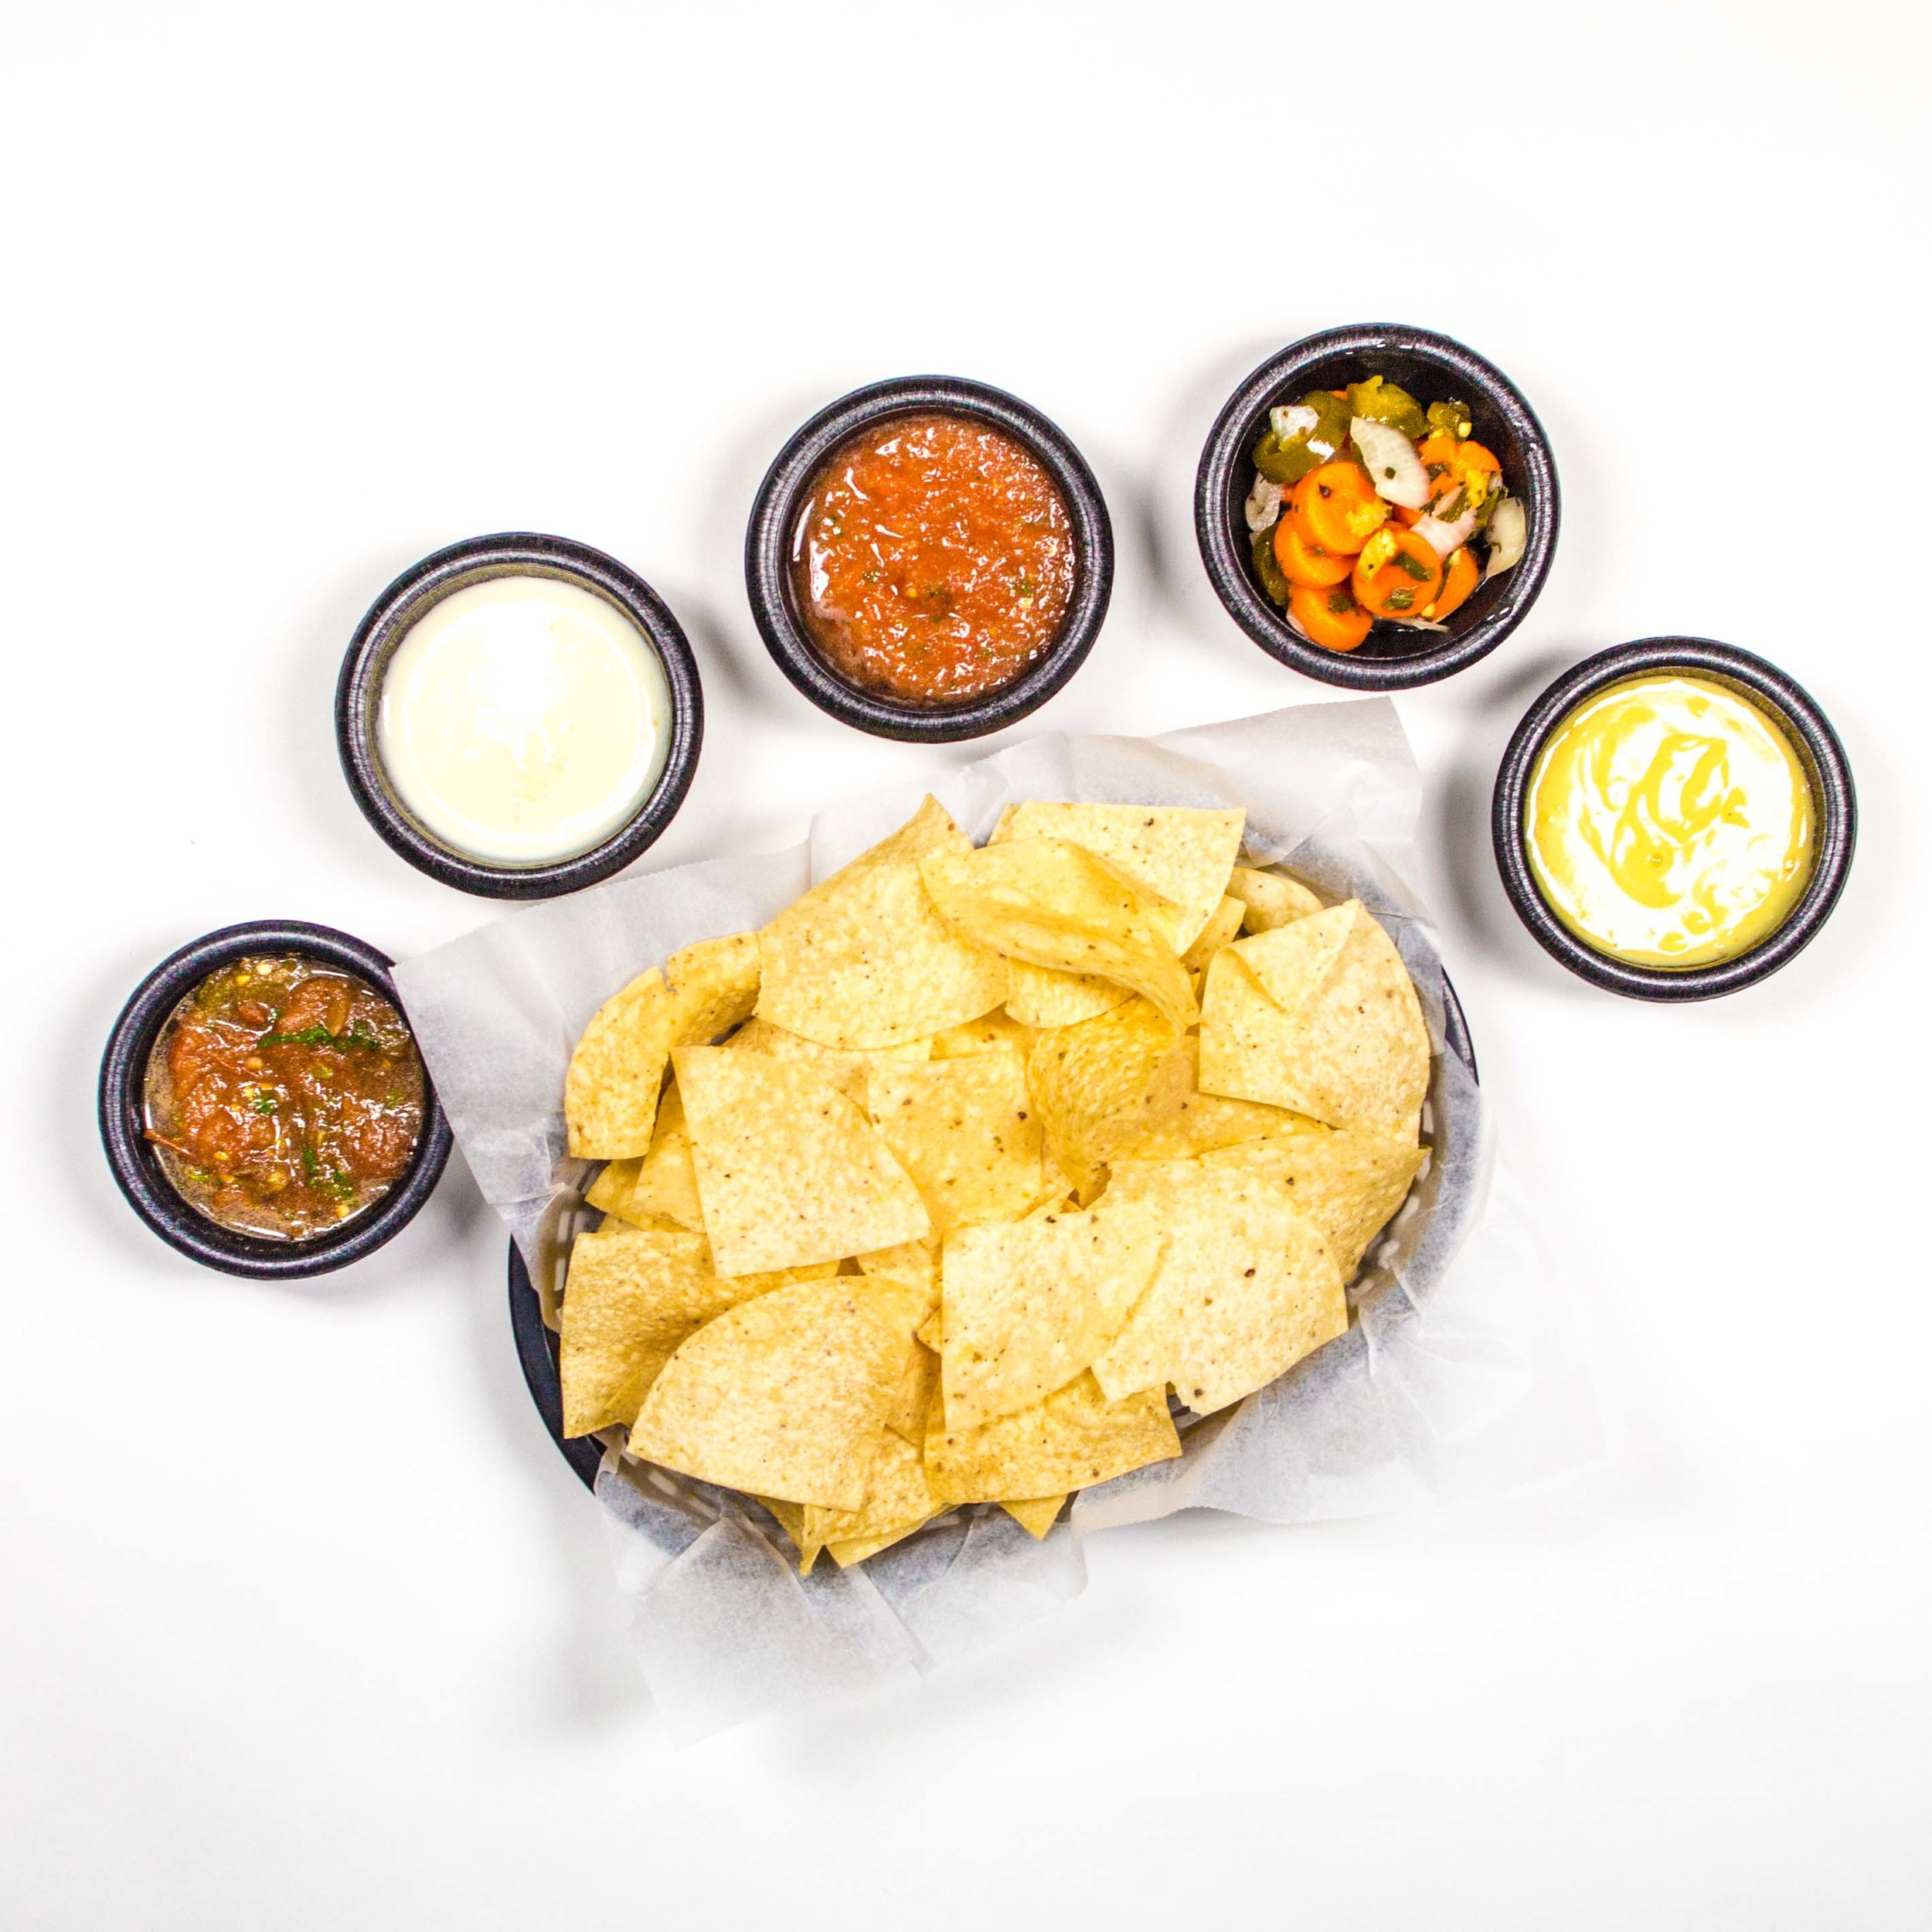 Chips & Salsa, Queso, Relish, Hot Salsa